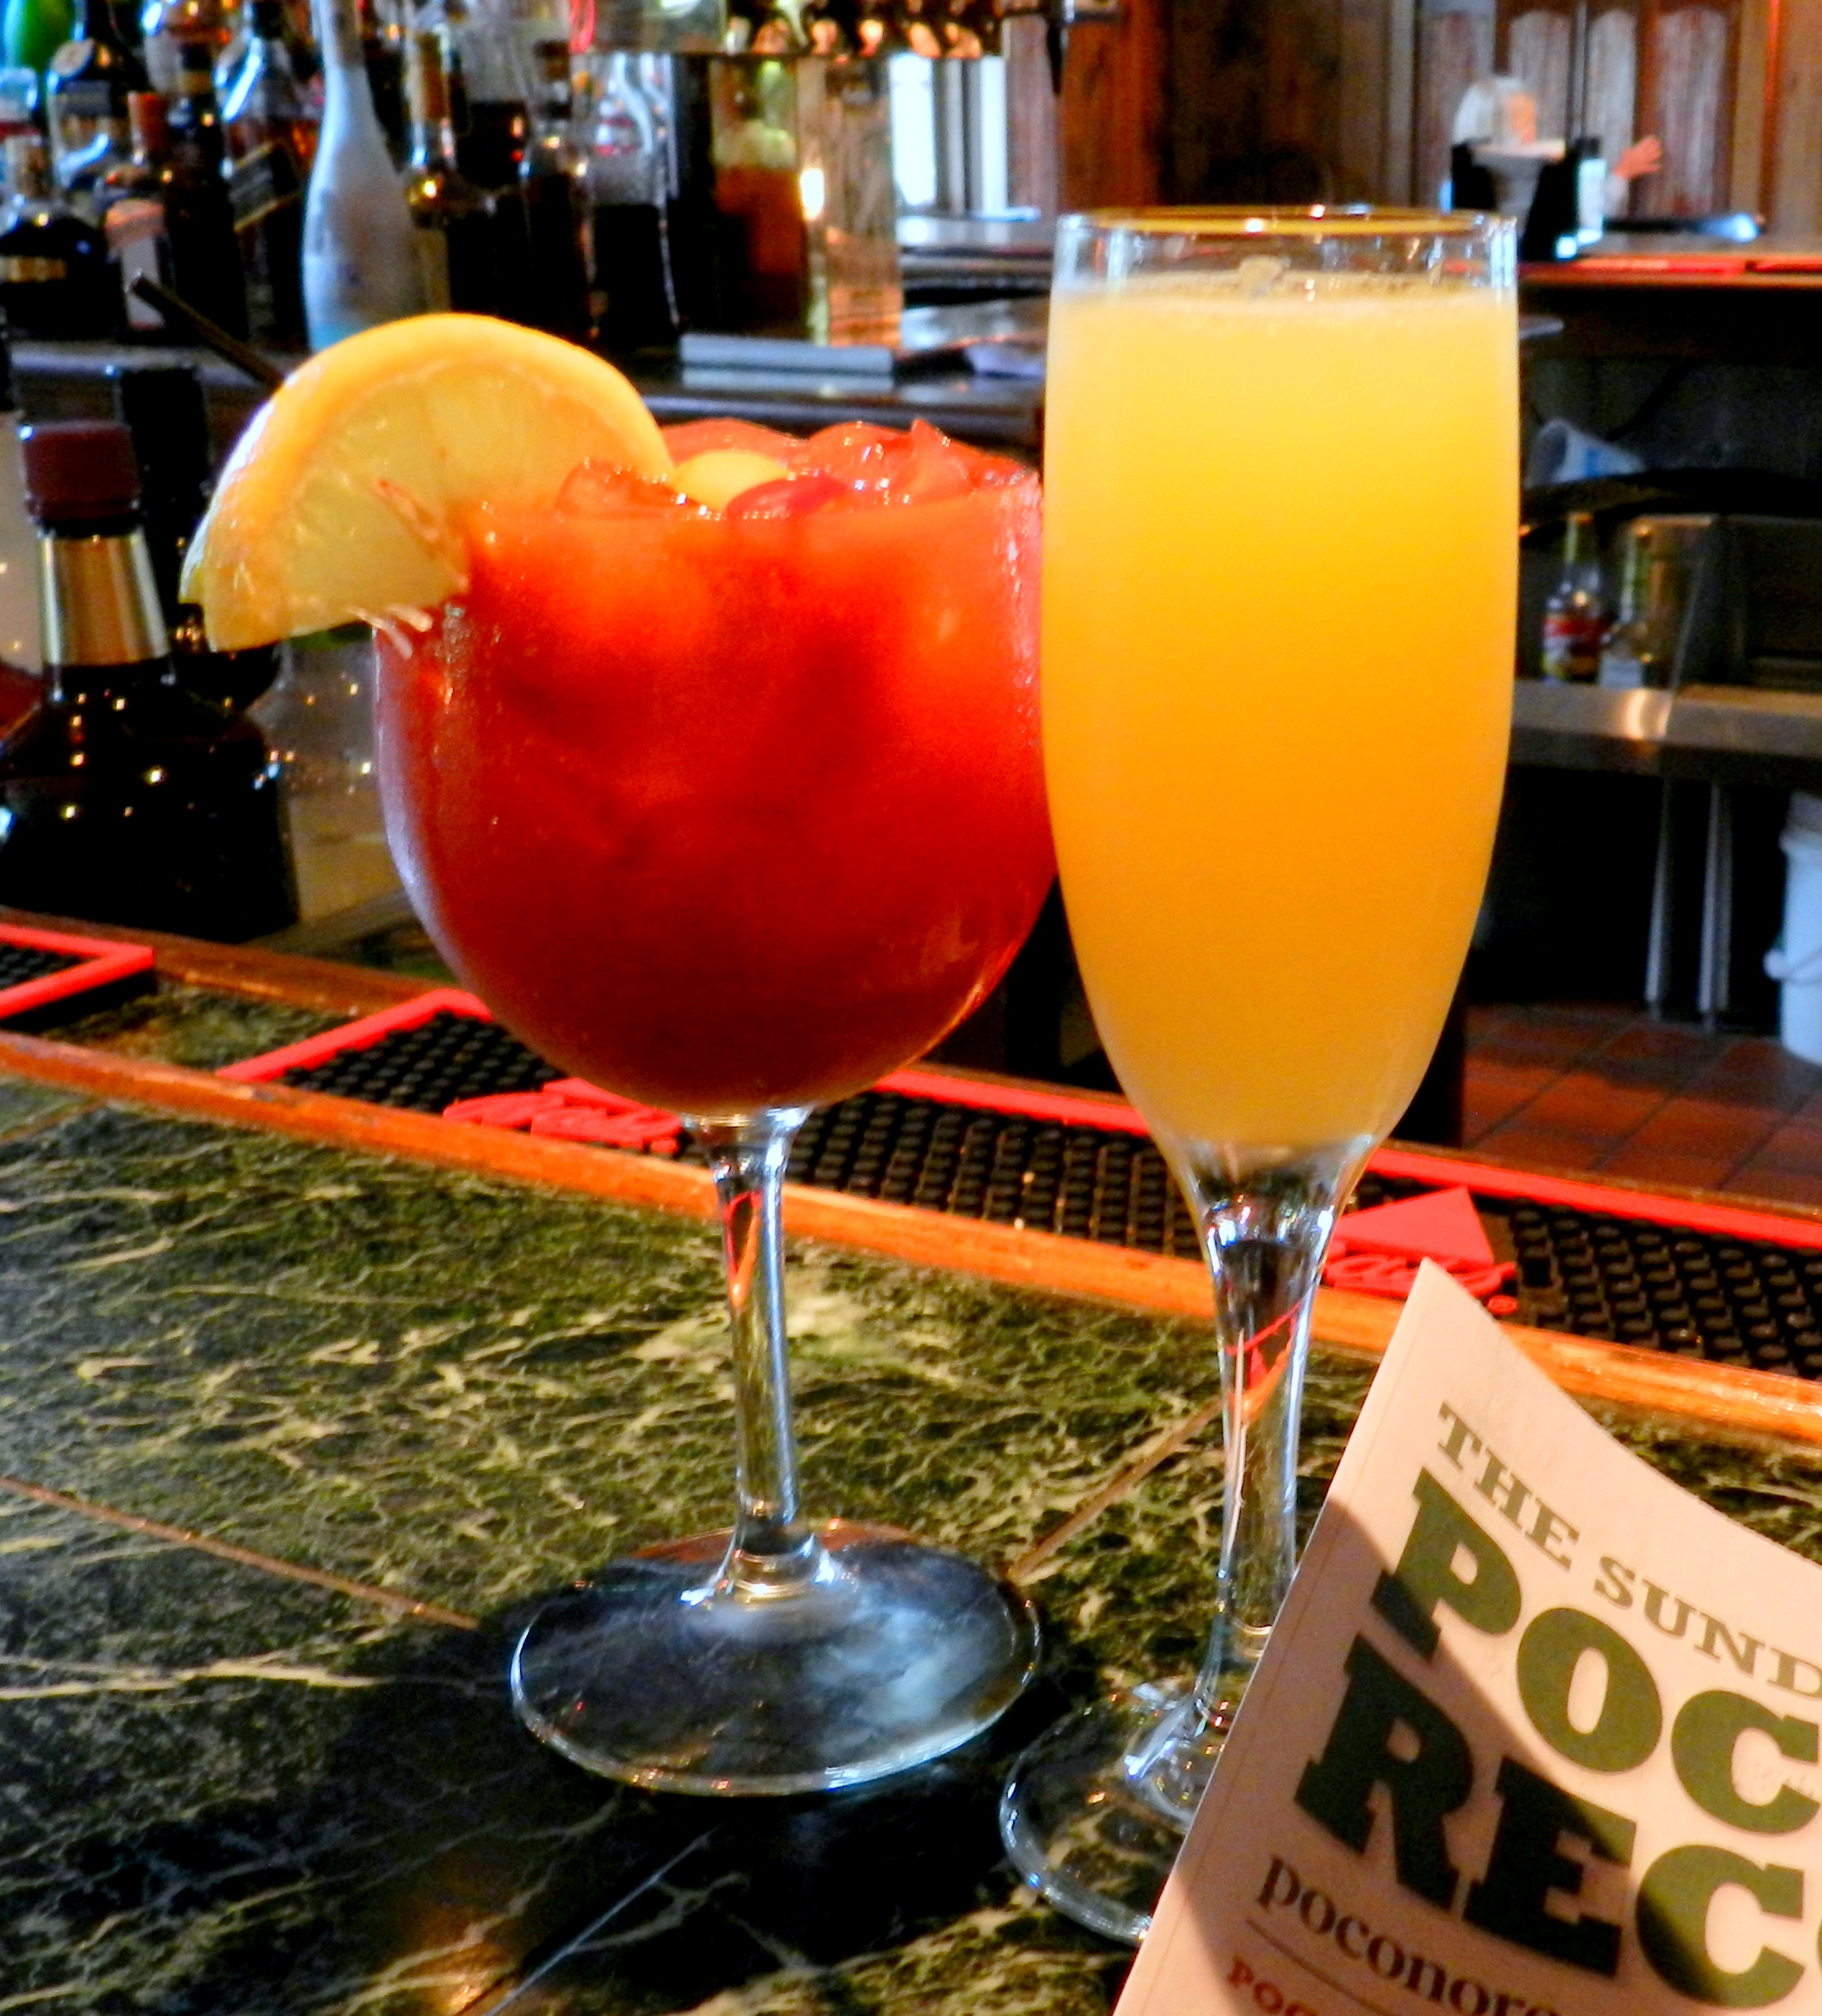 DSCN6985Sunday Brunch Drinks